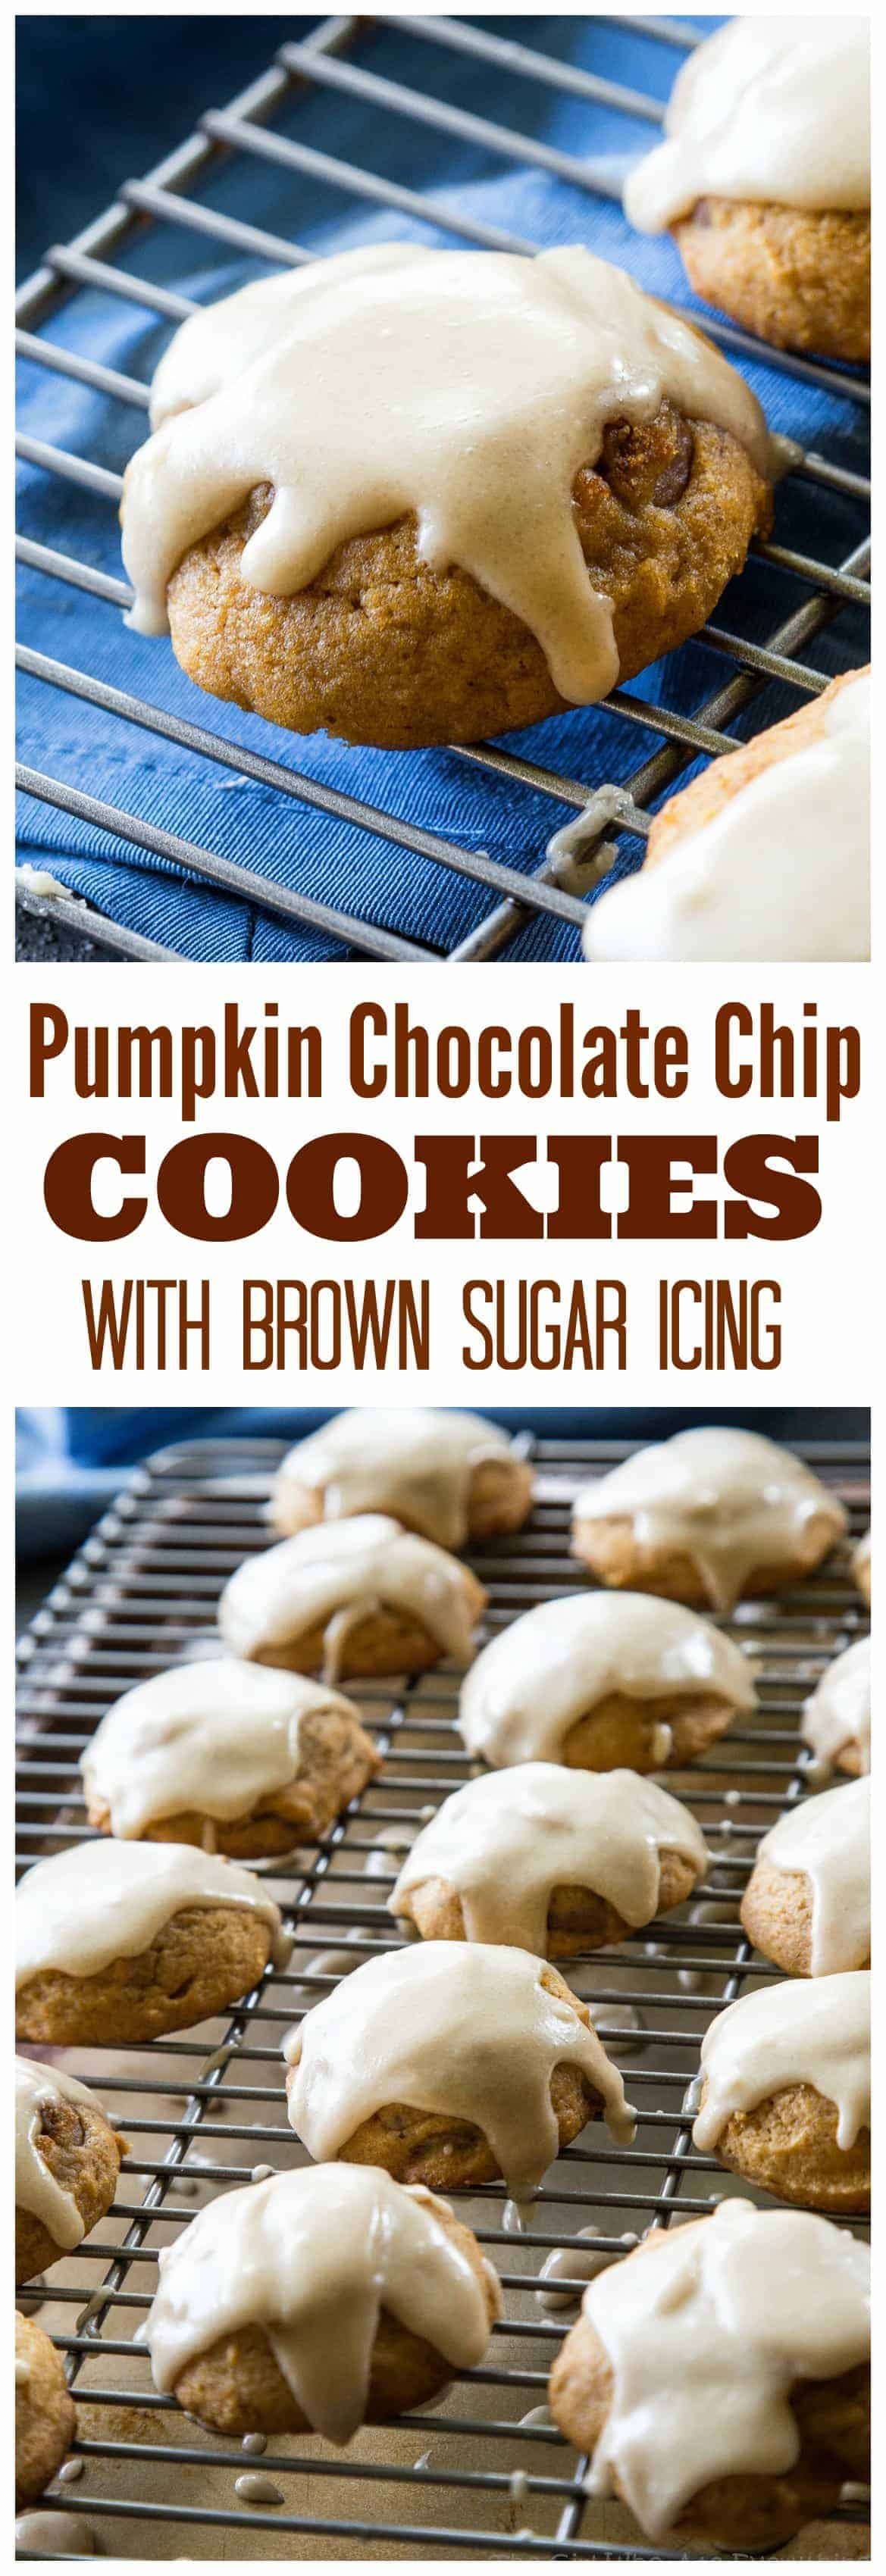 Pumpkin Chocolate Chip Cookies with Brown Sugar Icing - these soft pumpkin cookies will be a fall favorite every year. #pumpkin #brownsugar #chocolatechip #cookies